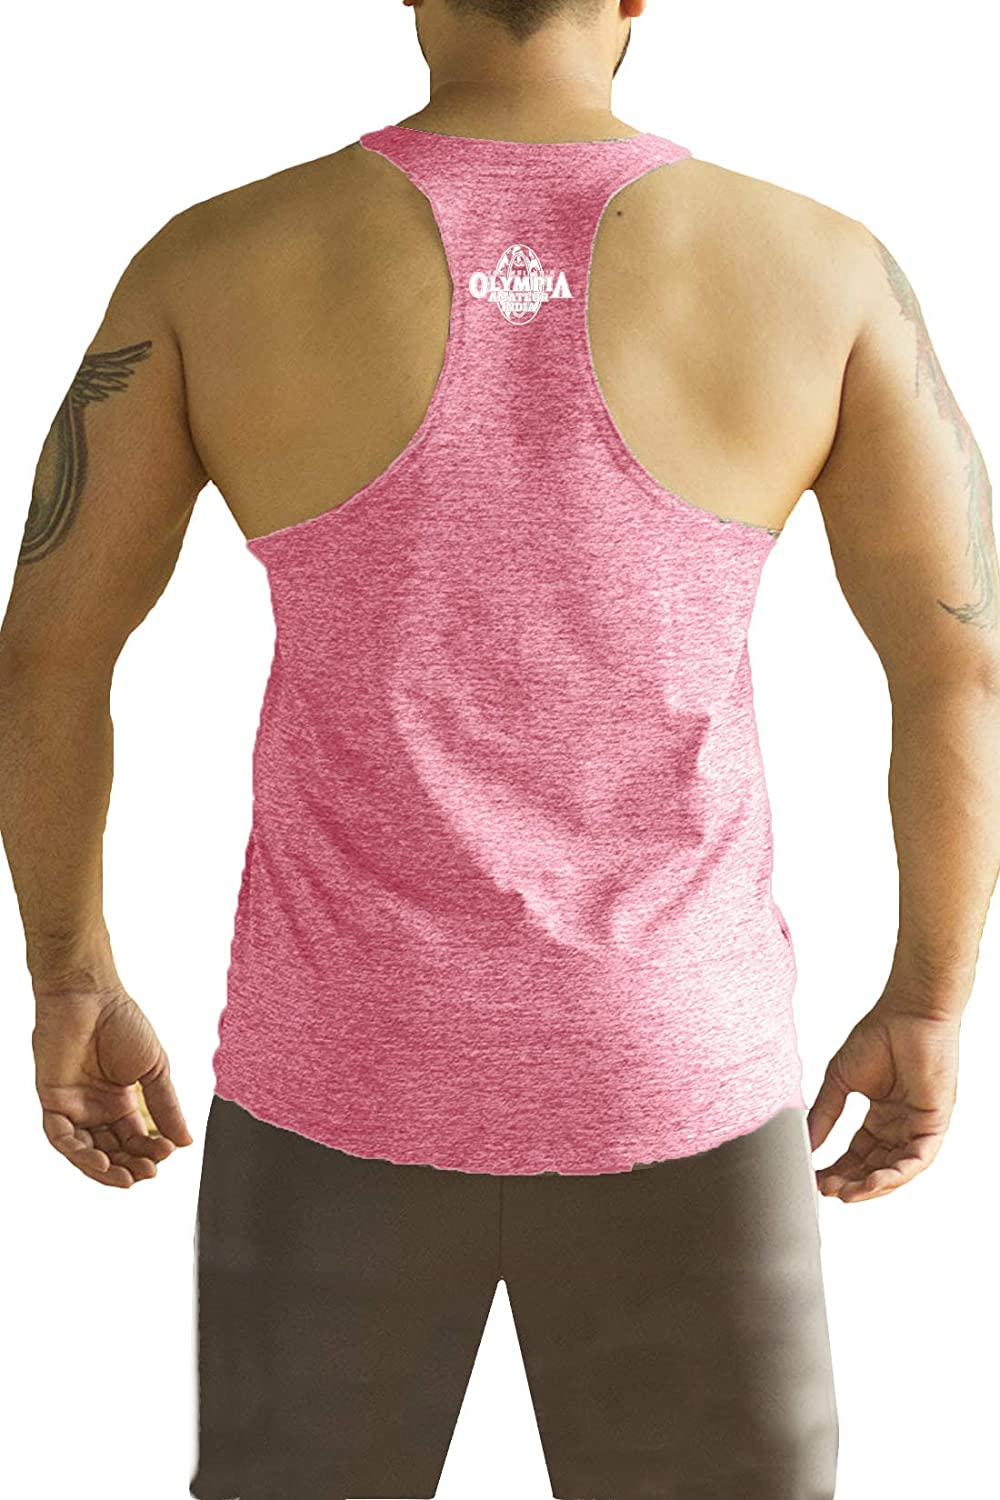 80d8c9eaee2722 Hashtag Official Olympia India Cotton Stringers for Men